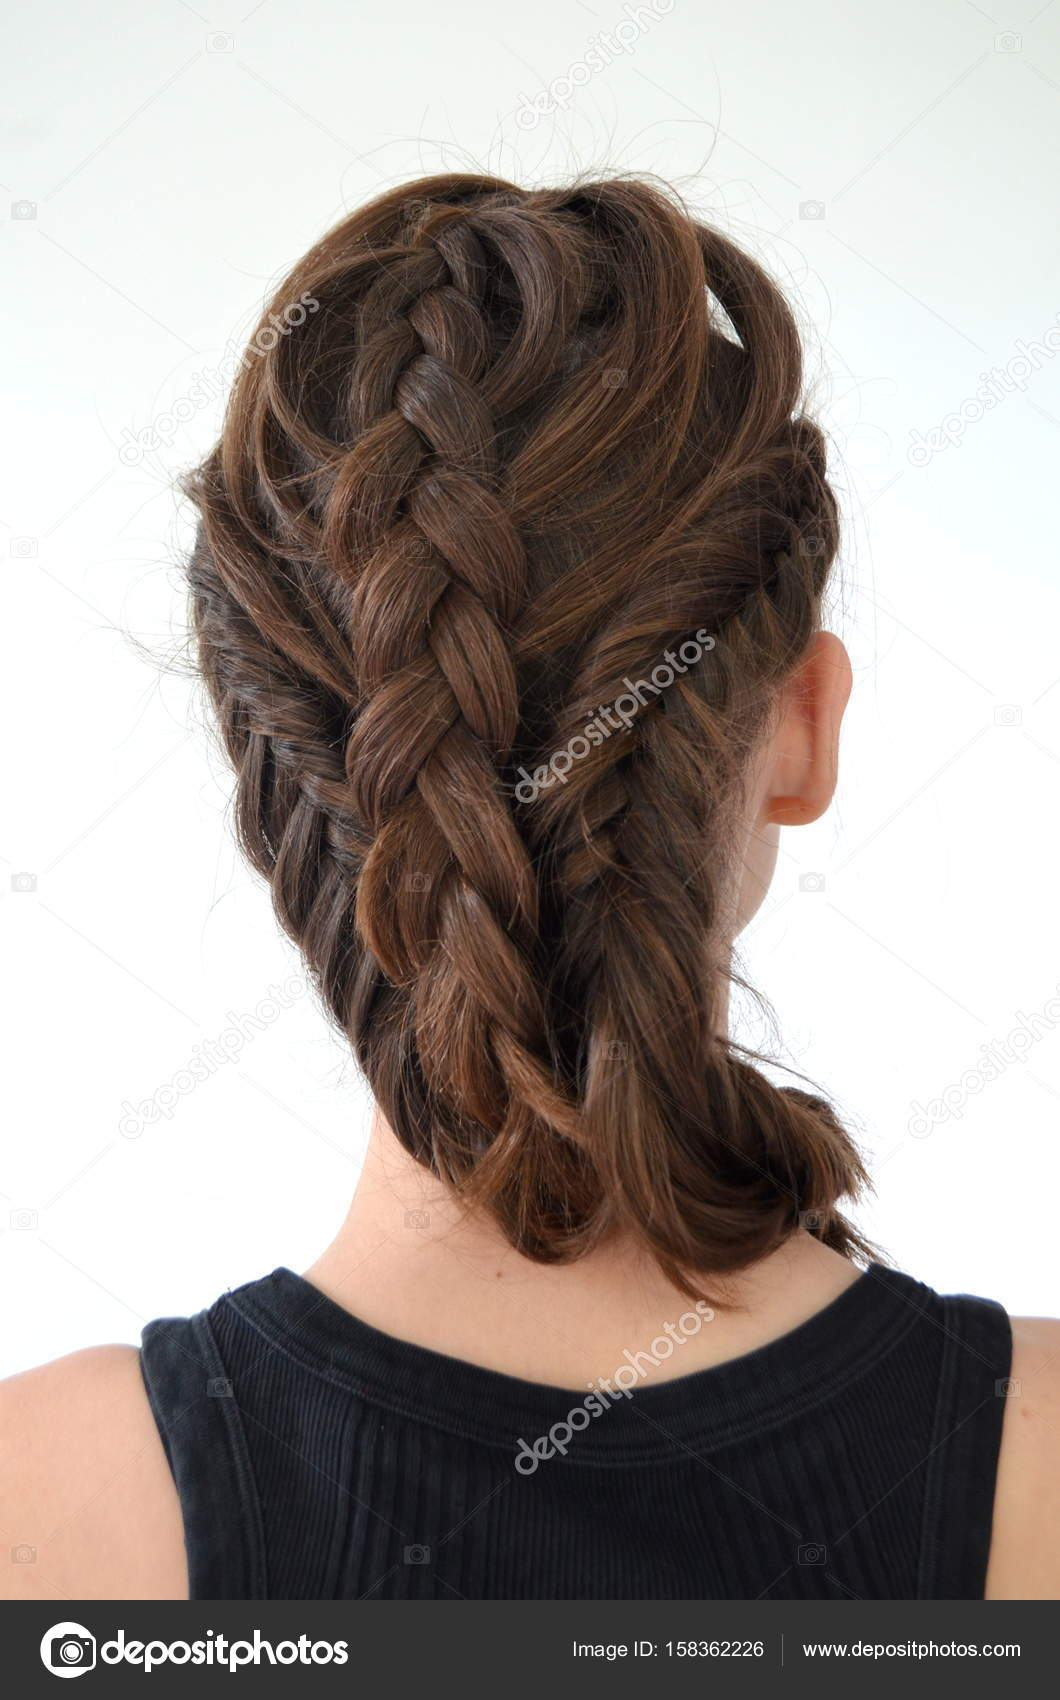 Spikelets on medium hair - hairstyles that will go to everyone 81